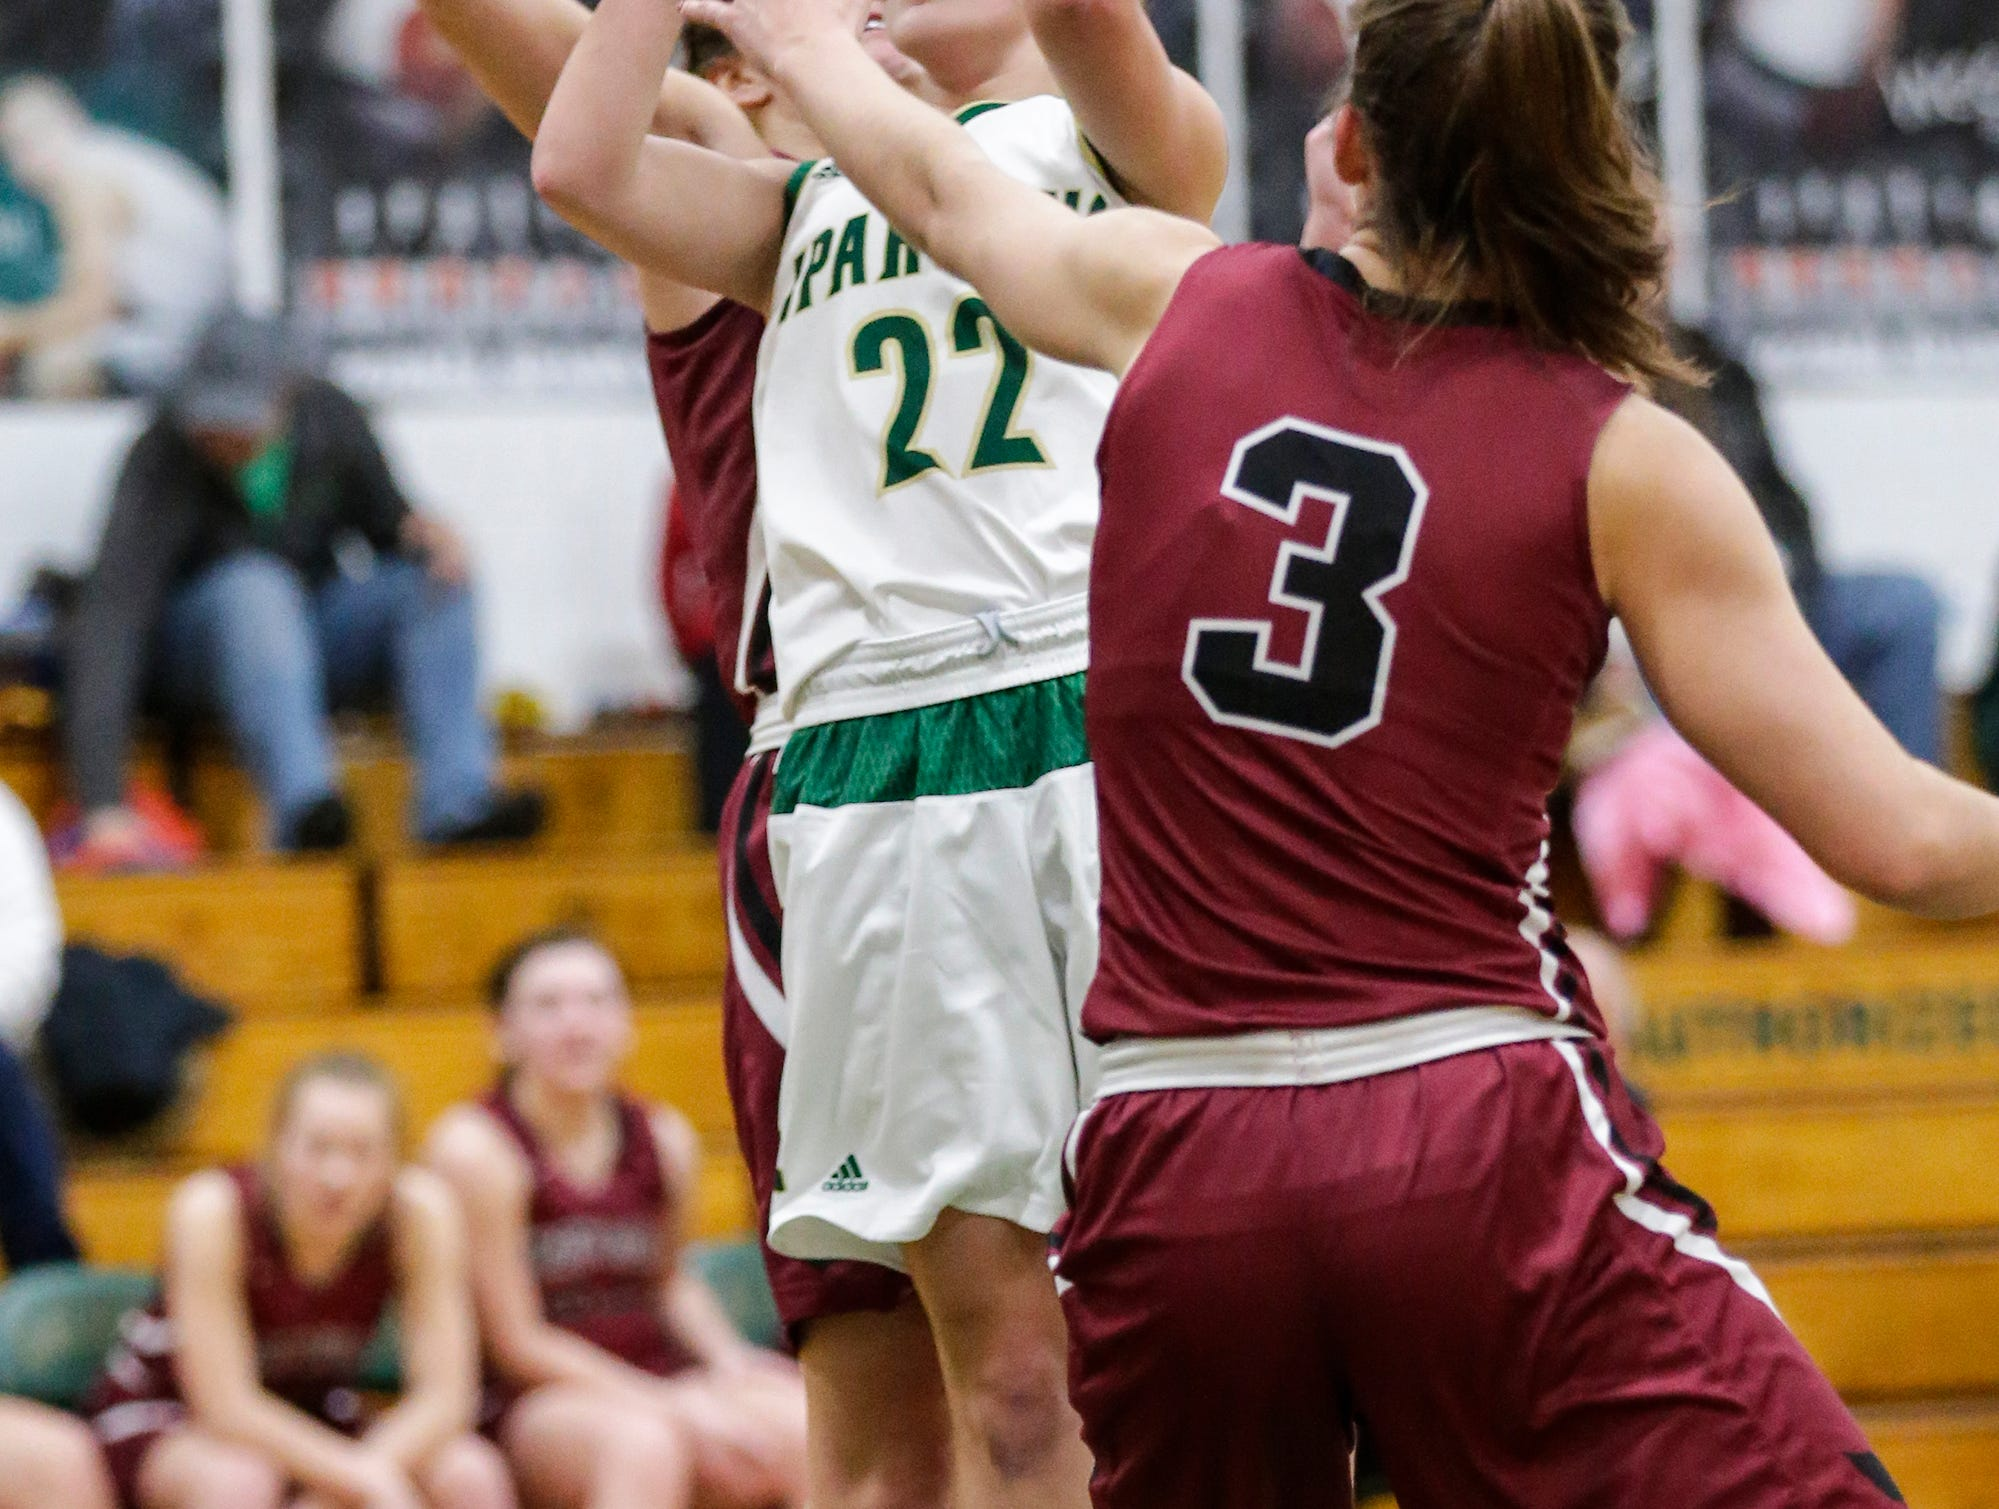 Laconia High School girls basketball's Haley Rens shoots for the basket against Mayville High School's Amber Schraufnagel during their game Friday, November 30, 2018 in Rosendale. Doug Raflik/USA TODAY NETWORK-Wisconsin